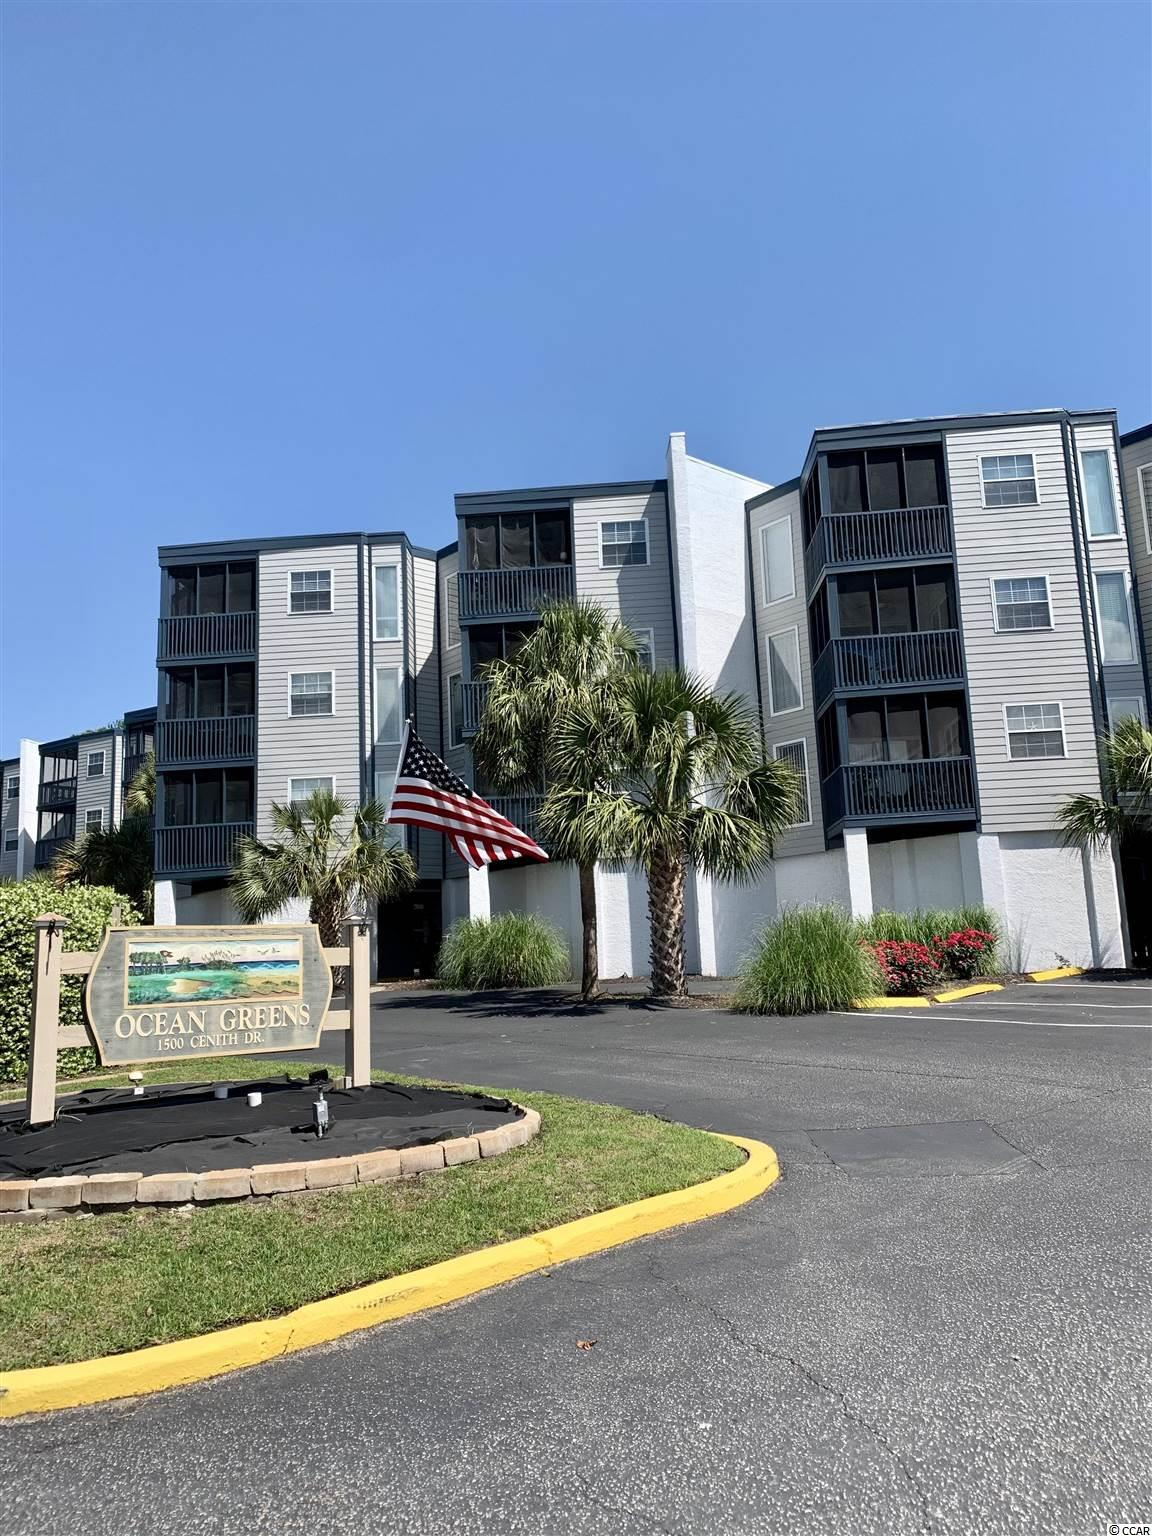 Second floor, fully furnished, end unit in the heart of North Myrtle Beach awaits the perfect buyer. This two bedroom, two bathroom split floor plan allows for private space, and an open concept living/dining/kitchen combo. The current owners reconfigured the kitchen island to make a more open, flowing space. With luxury vinyl plank and tile throughout the condo, it is easy to maintain and looks great. When walking out onto the screened porch take notice two new sliding glass doors with built in blinds, and new tiled flooring. The space flows well inside, and the amenities outside are ample. From the on site pool, to the nearby parks, golf courses, restaurants and shopping, there is always something to do. Or if rest and relaxation is on the menu, take your golf cart (which can be parked on site) on a five-minute ride to the white, sandy beaches of the Atlantic Ocean. With no restrictions on long term or short term rental this condo can be used as a primary residence, an income producer or a second home.  Make an appointment today to view this privately situated haven.